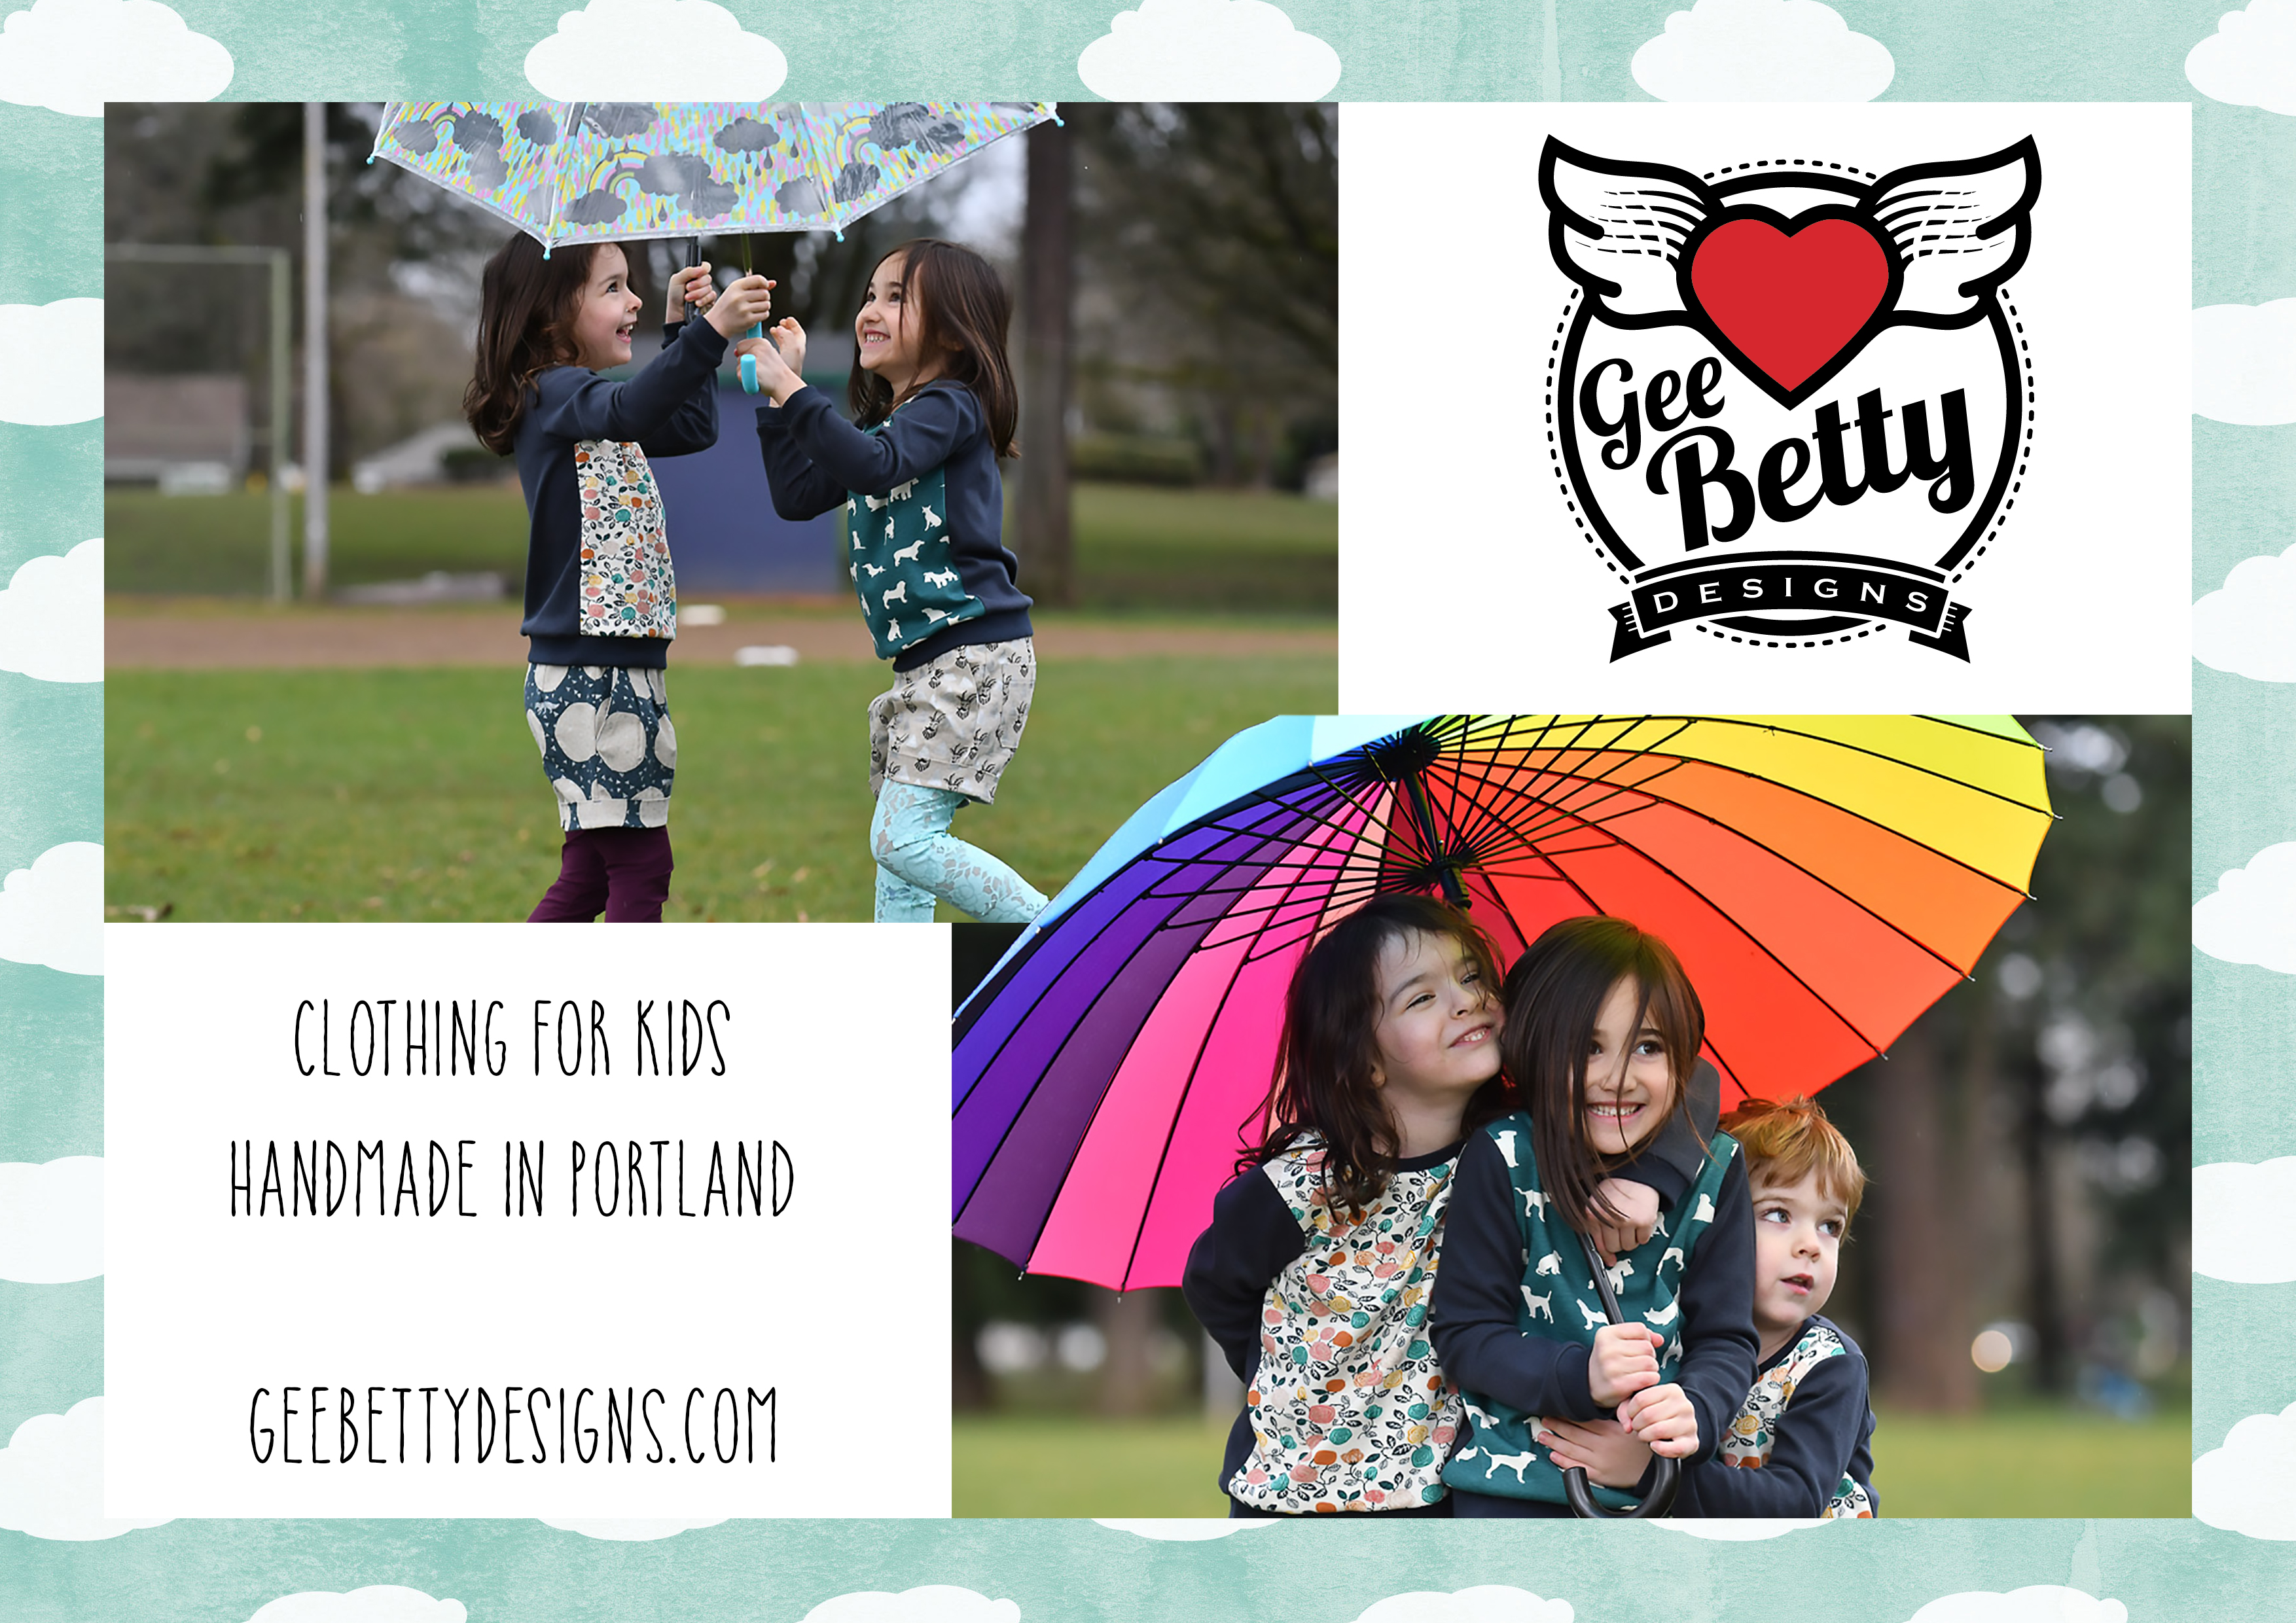 Gee Betty Design Print Ad